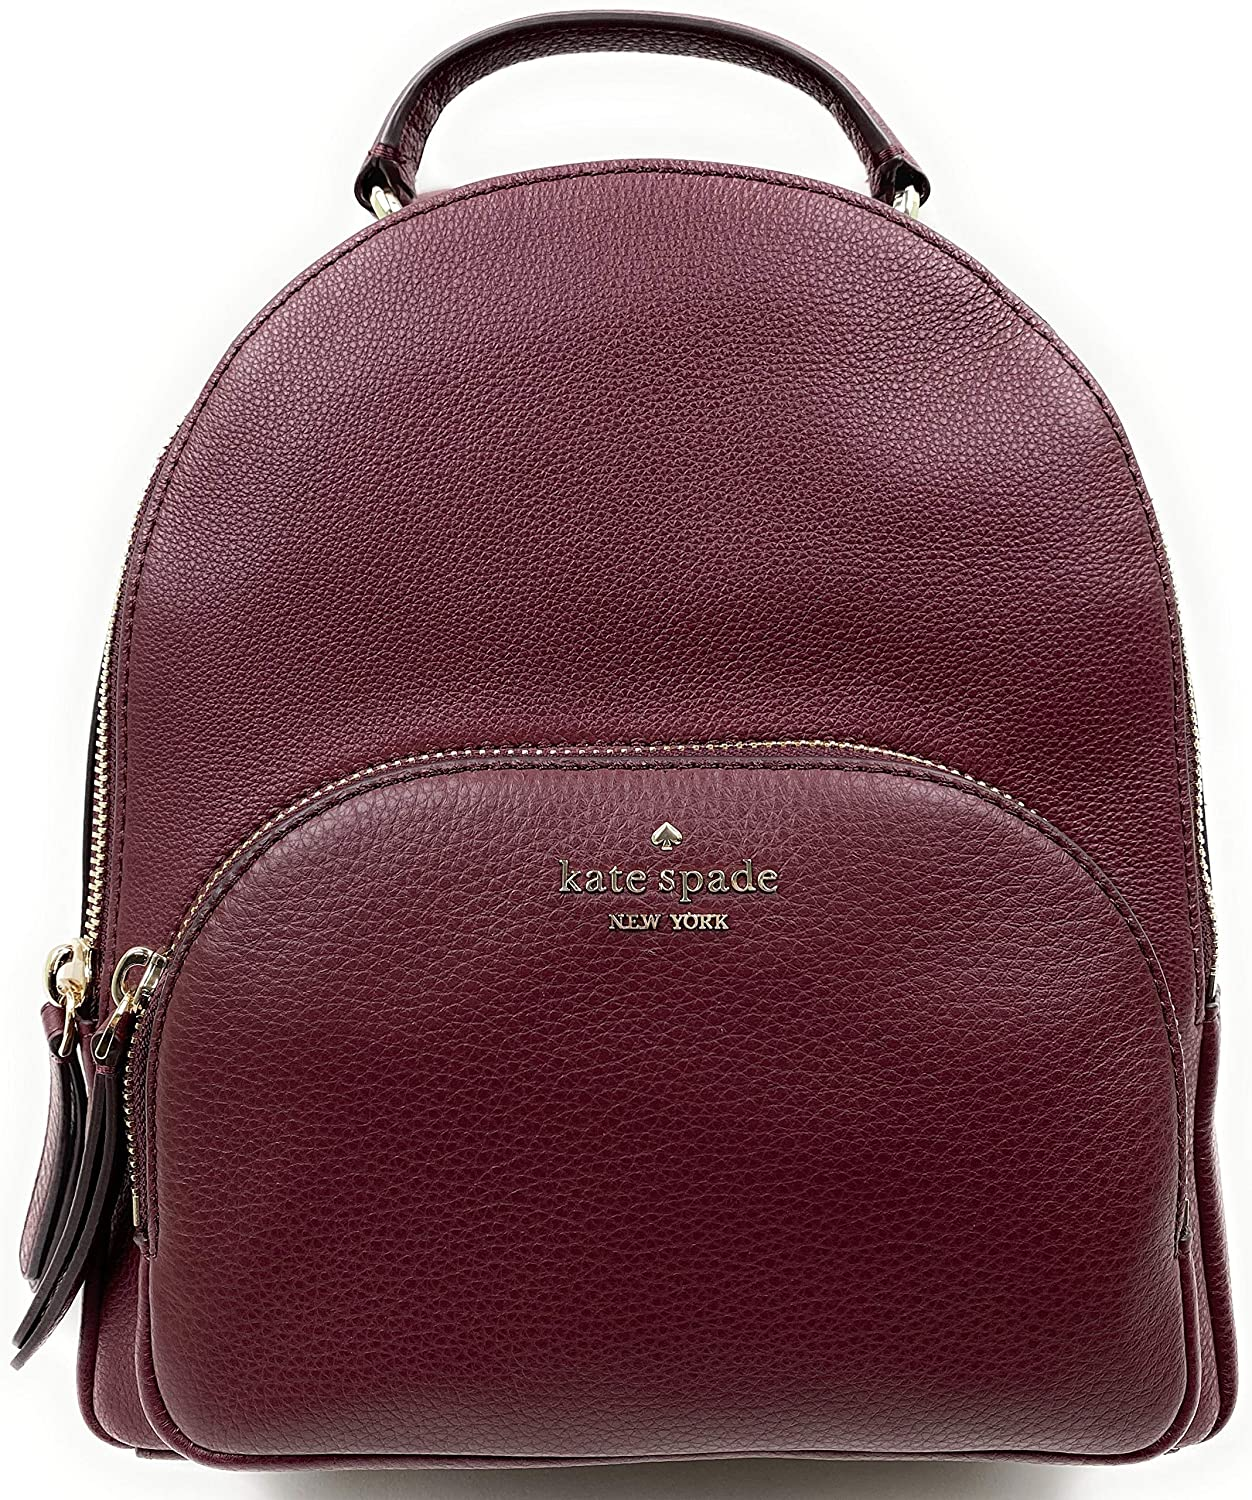 25% OFF Kate Spade New York Jackson Backpack Pebbled Medium Che Leather Direct store